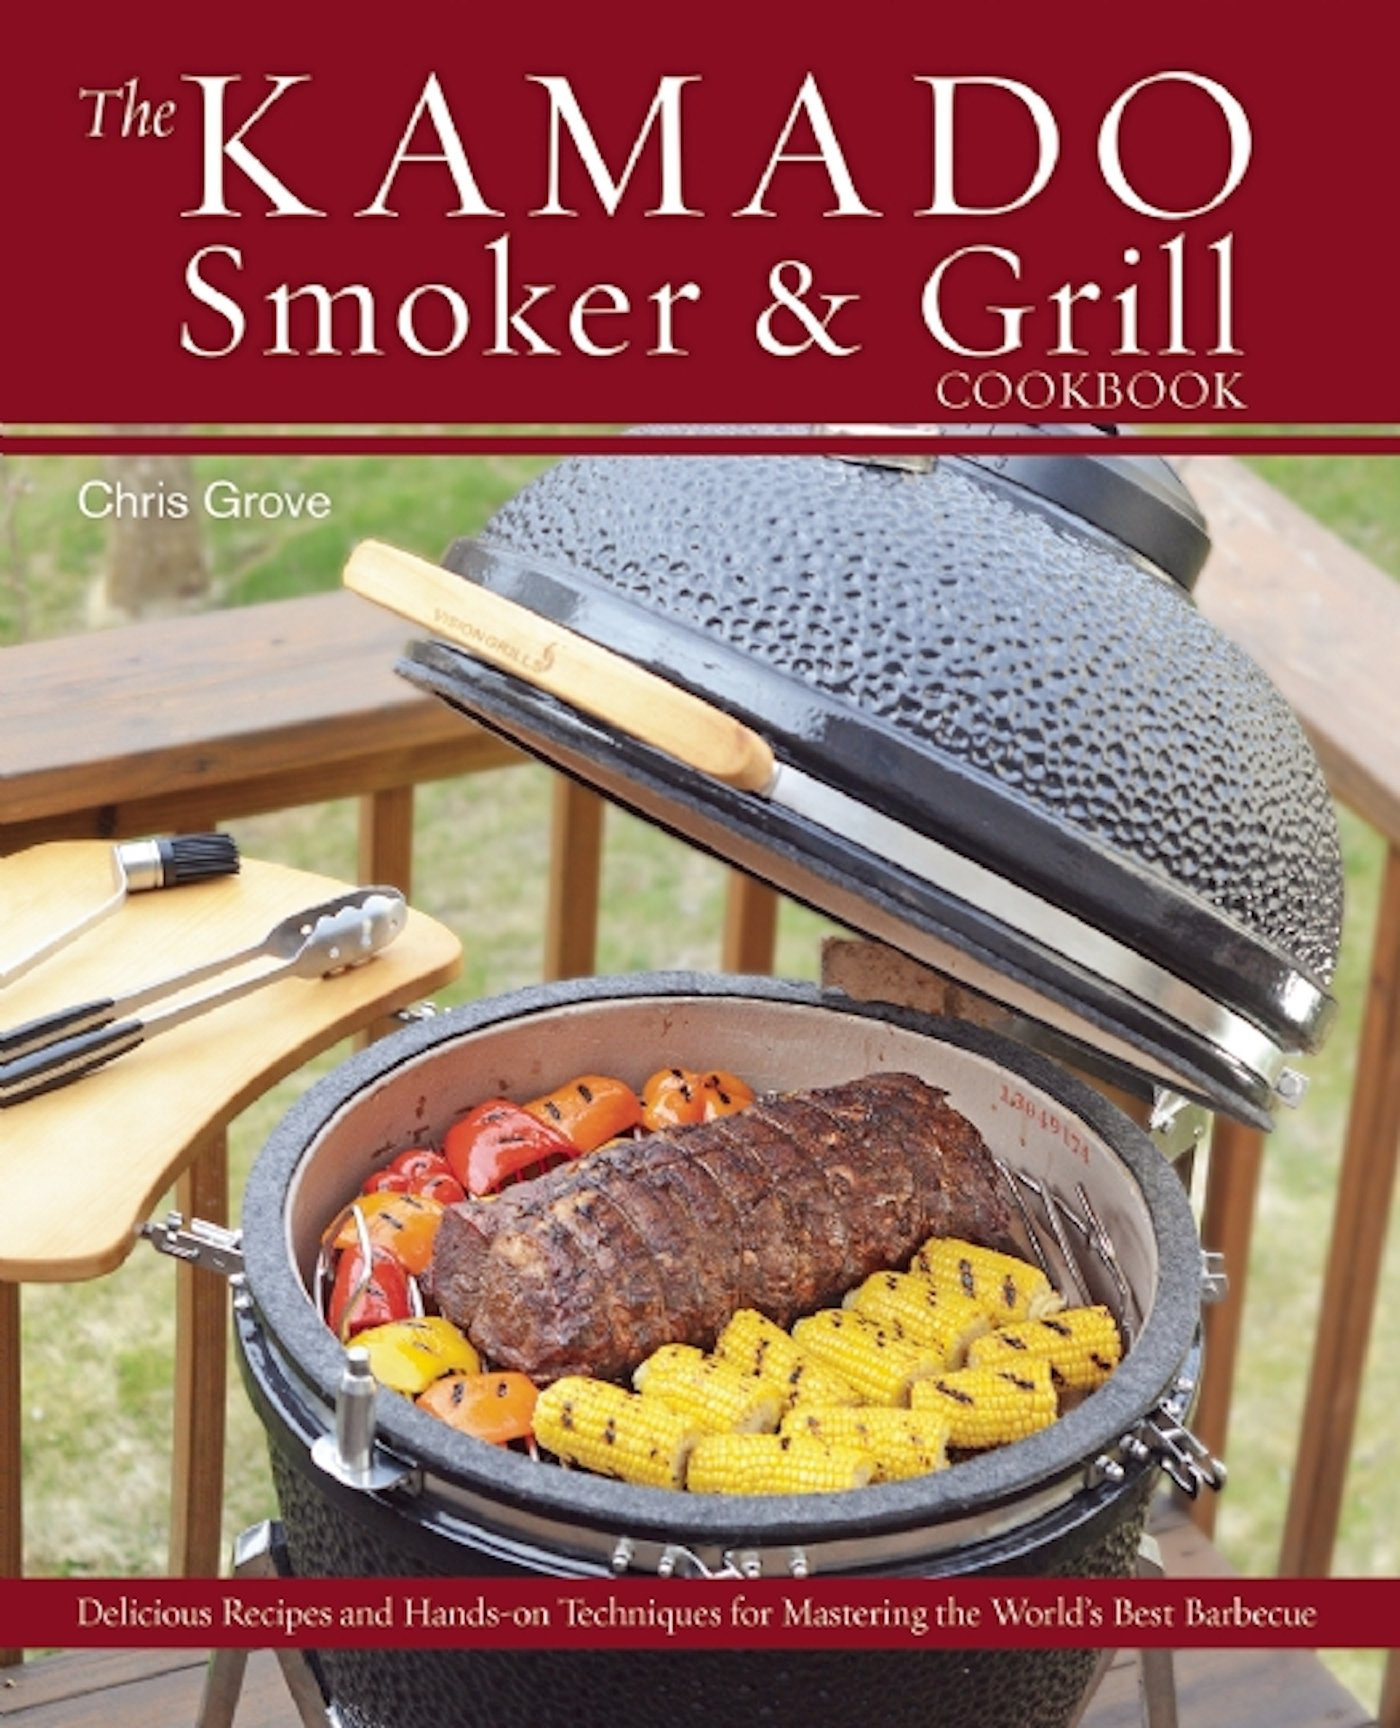 The Kamado Smoker and Grill Cookbook: Recipes and Techniques for the World's Best Barbecue by Ulysses Press